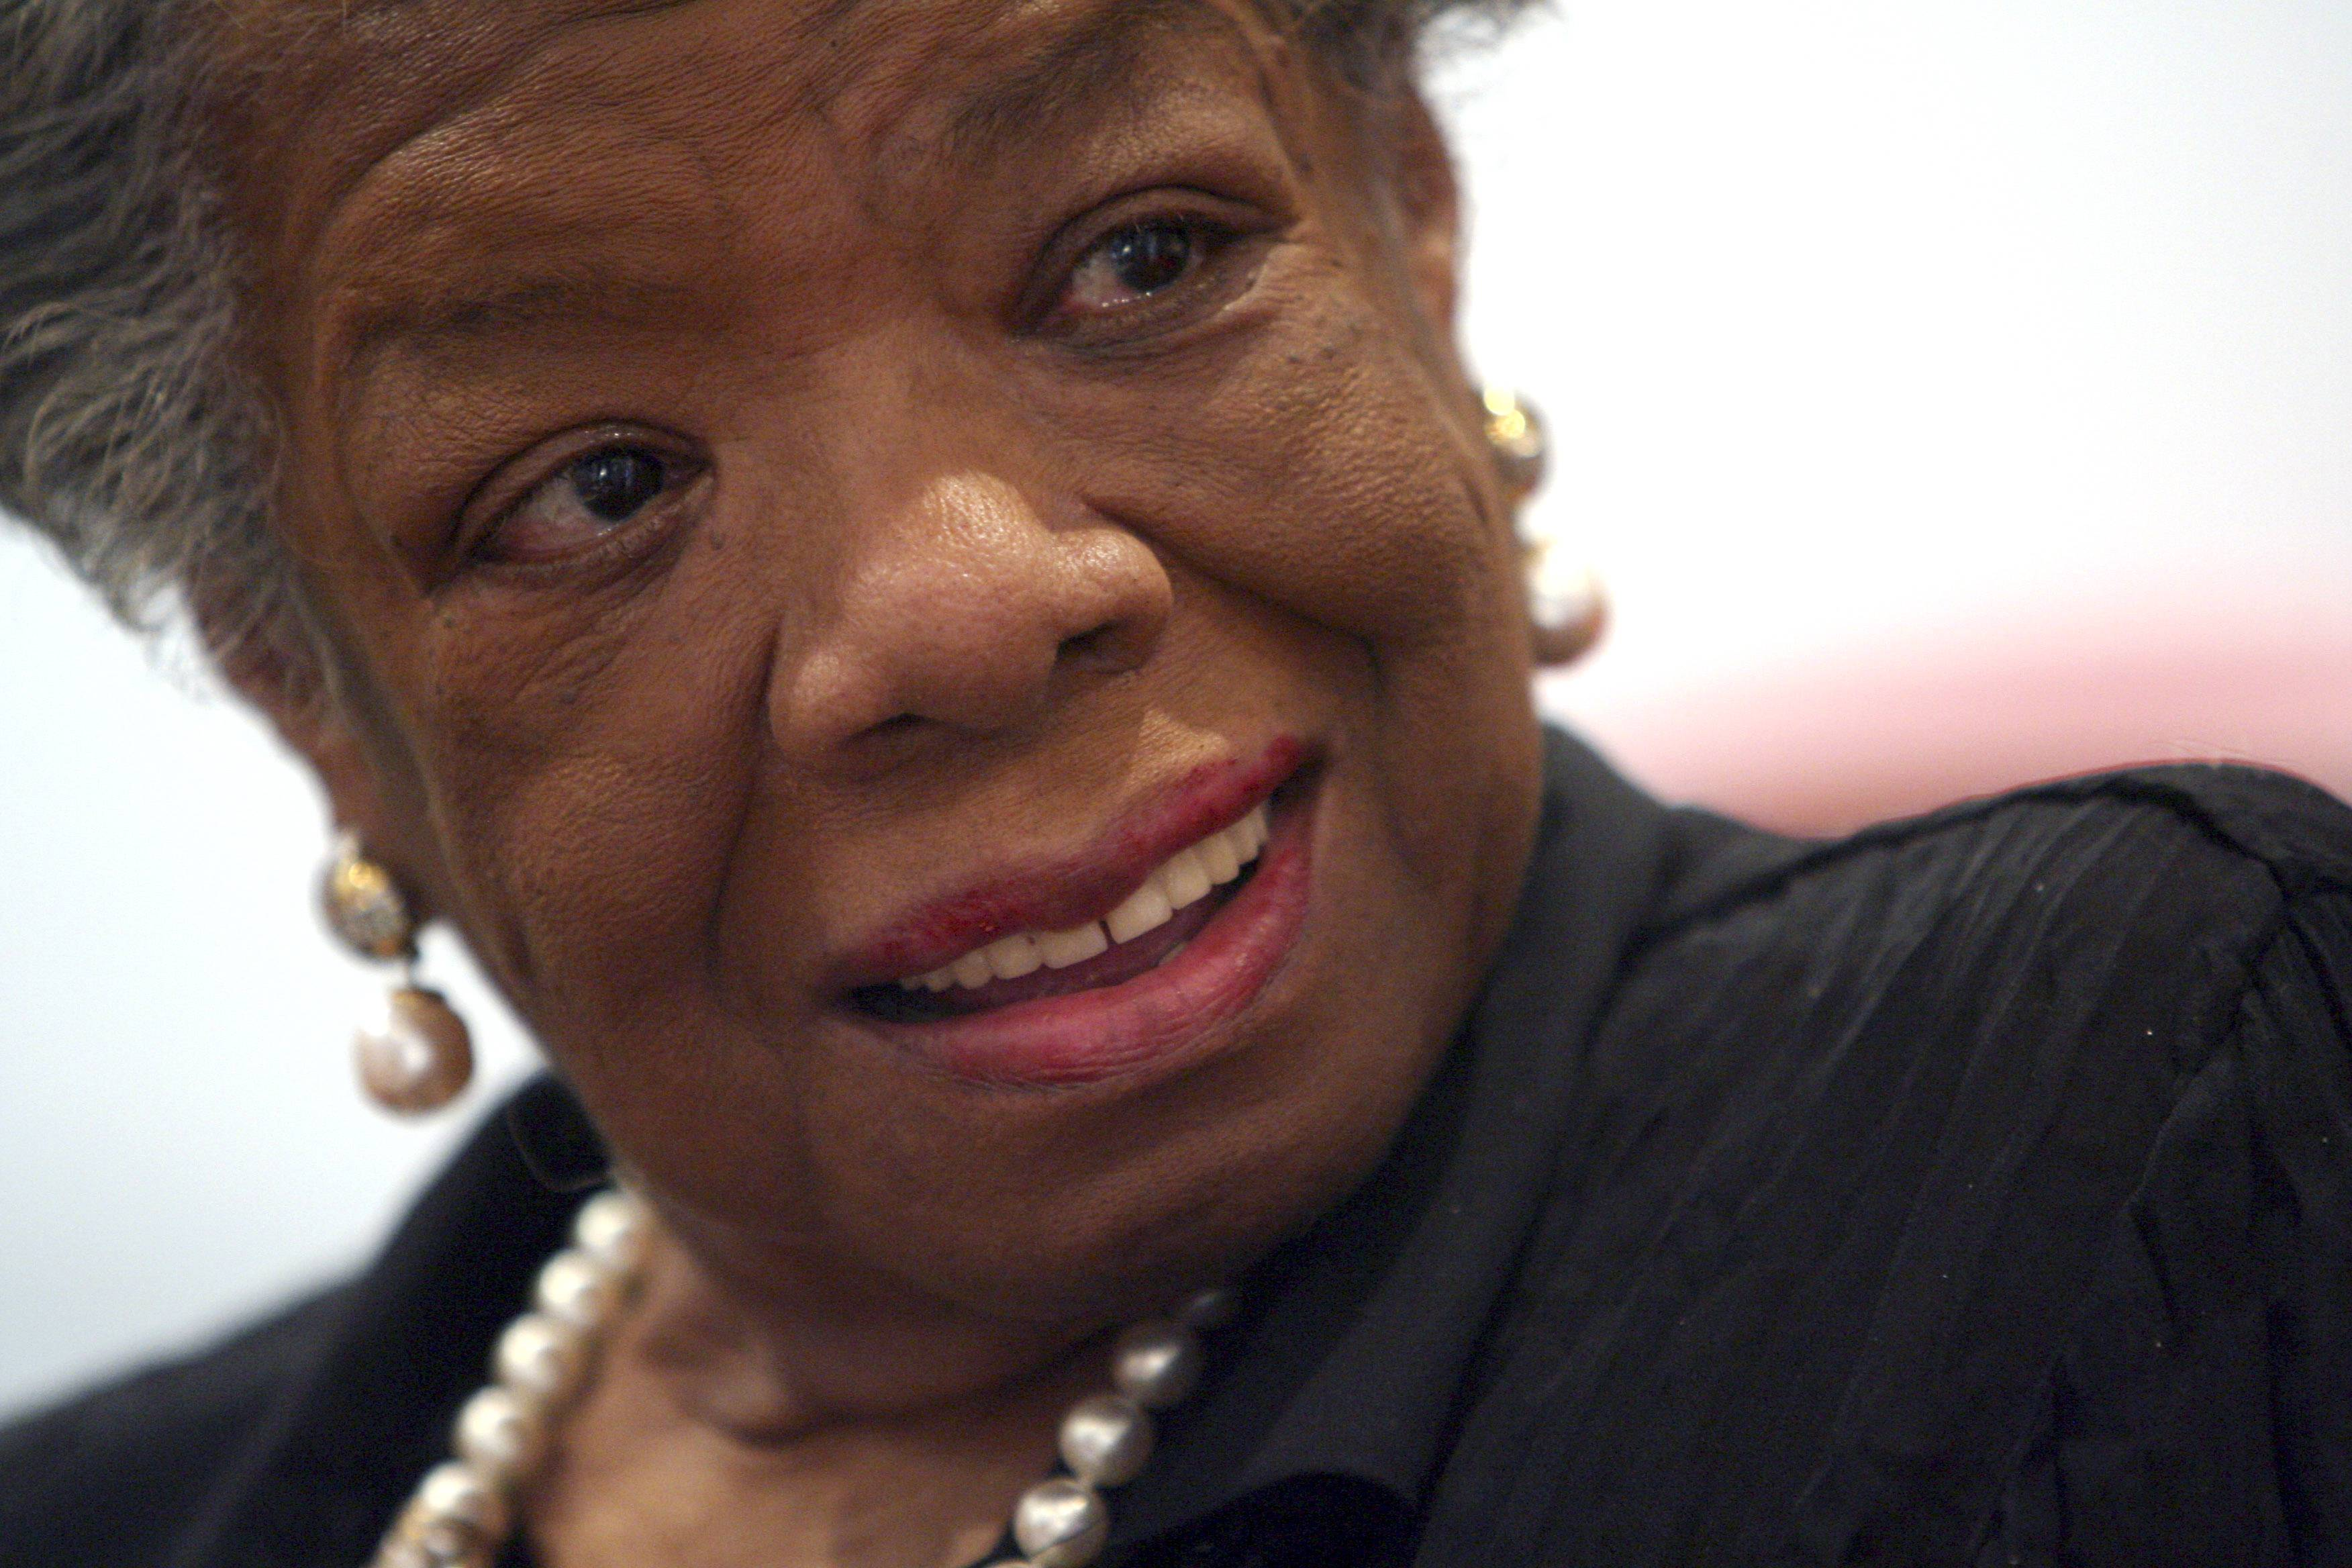 The New York Public Library is presenting an exhibition commemorating the life of Maya Angelou, who died Wednesday.